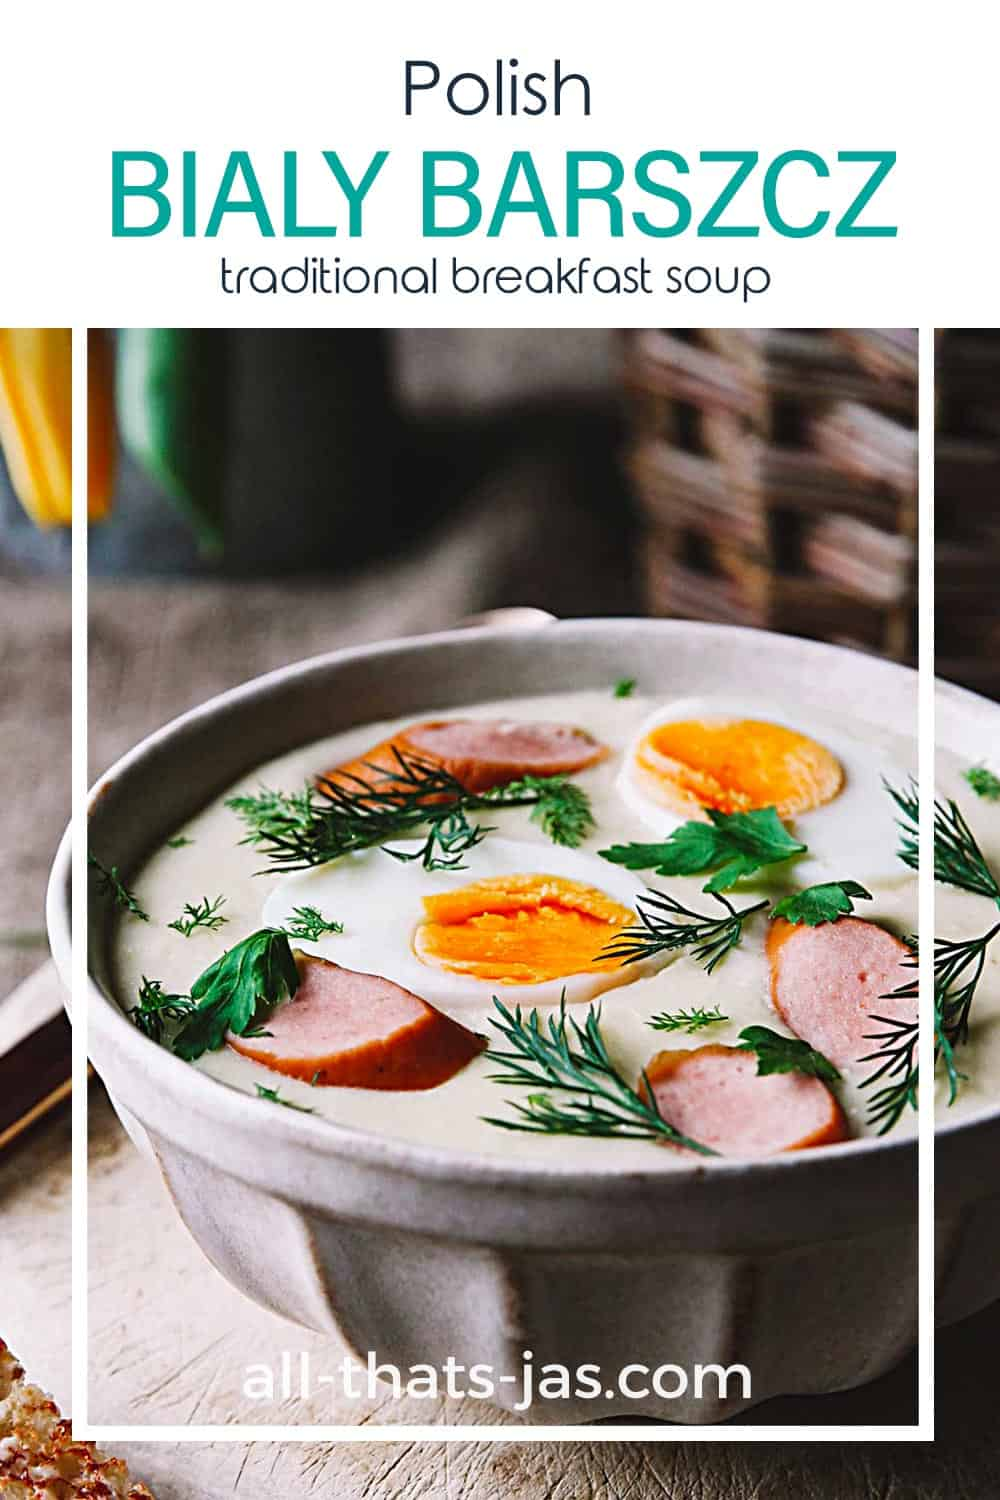 A close up of white soup with eggs, dill, and sausage with a text overlay.